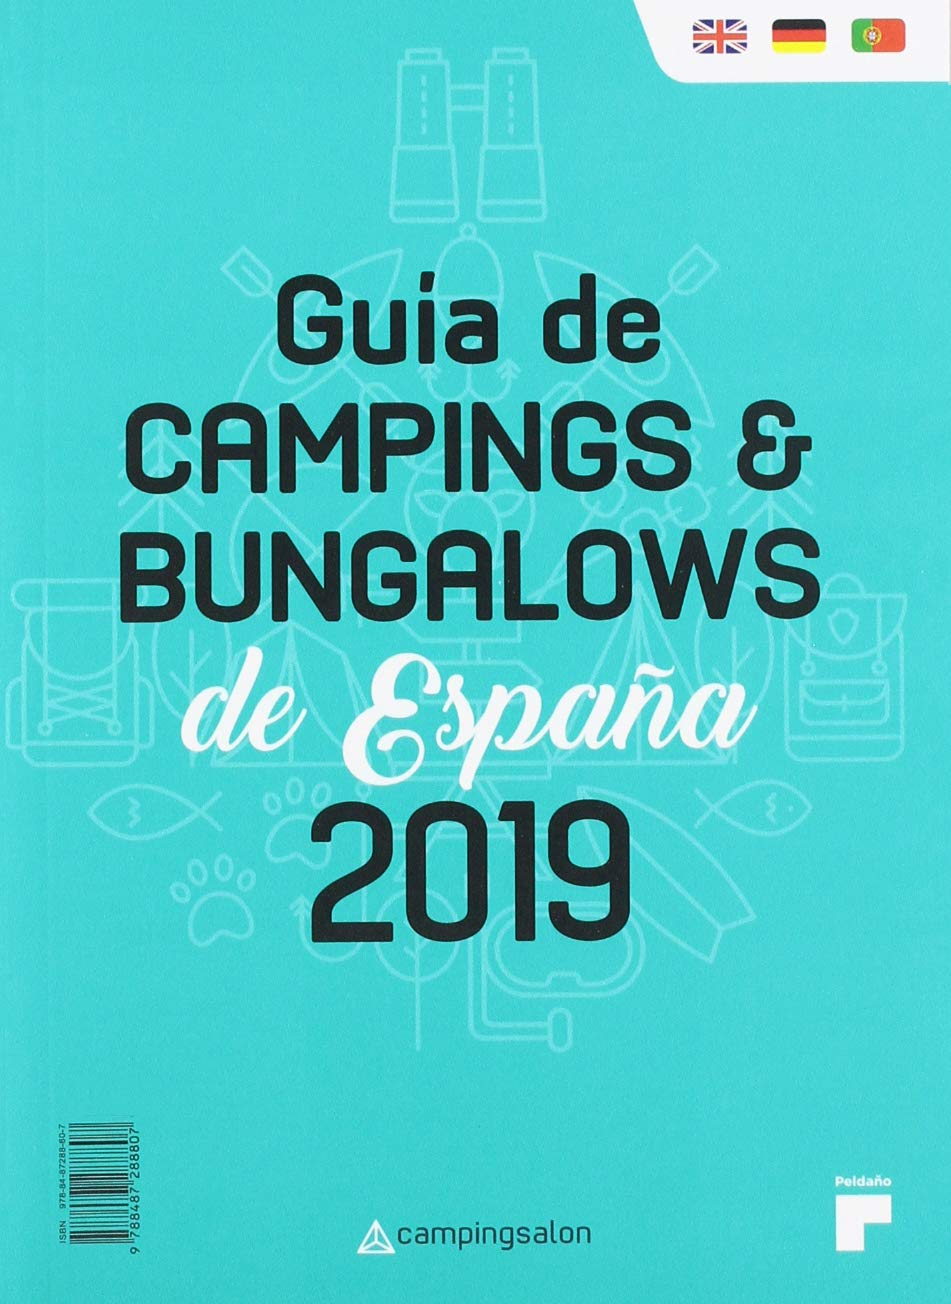 GUIA DE CAMPINGS Y BUNGALOWS DE ESPAÑA 2019: Amazon.es ...